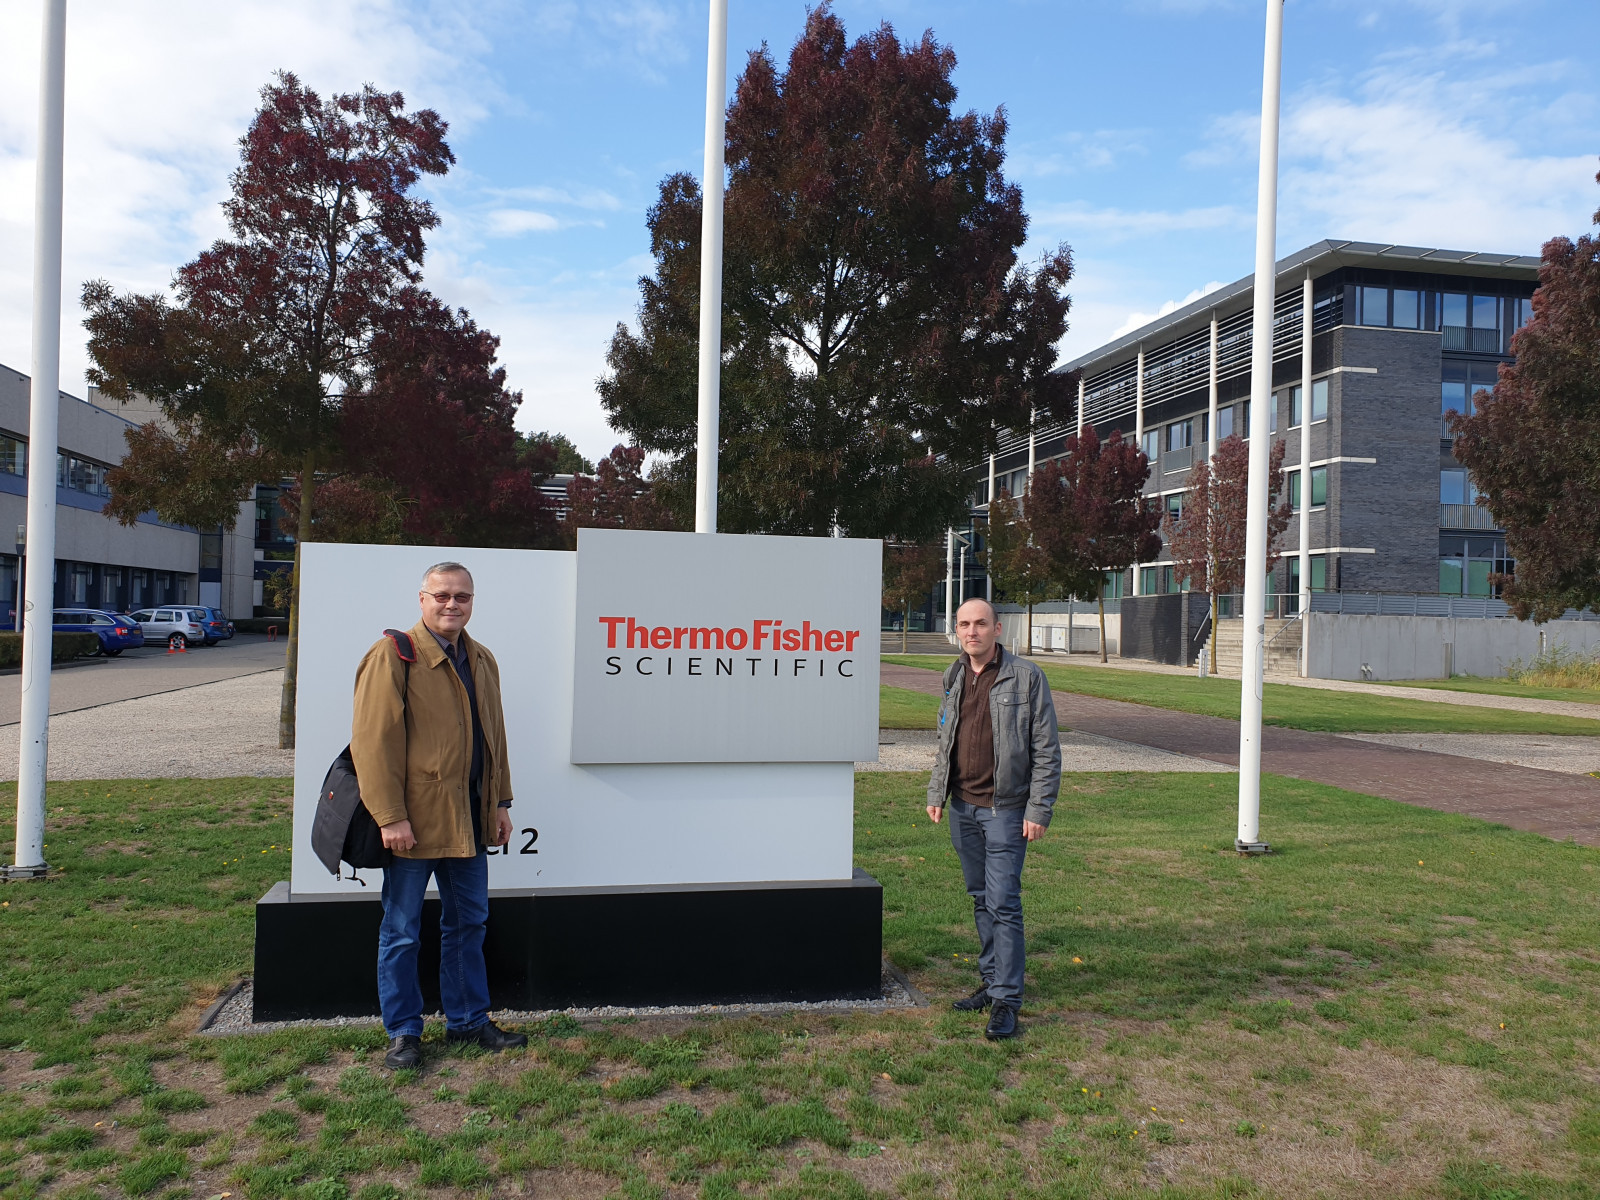 Visit to Thermo Fisher Scientific center